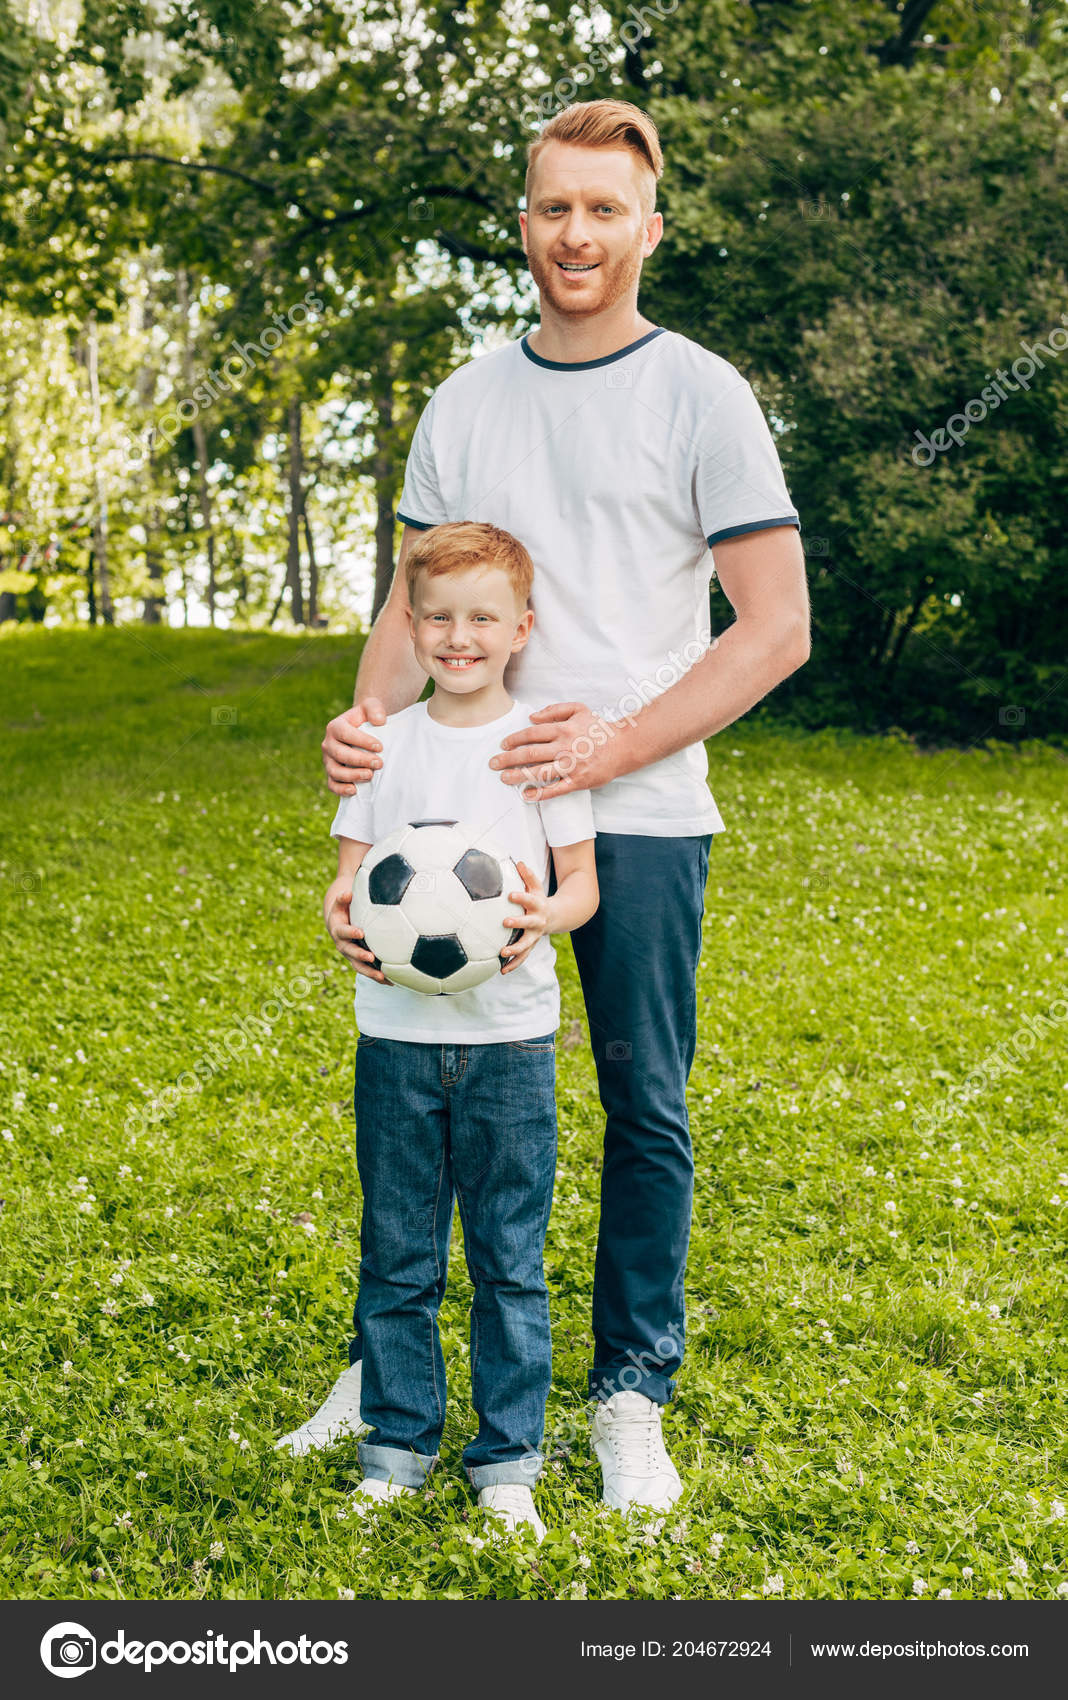 e2489fff5 Happy Father Son Soccer Ball Standing Together Smiling Camera Park — Stock  Photo